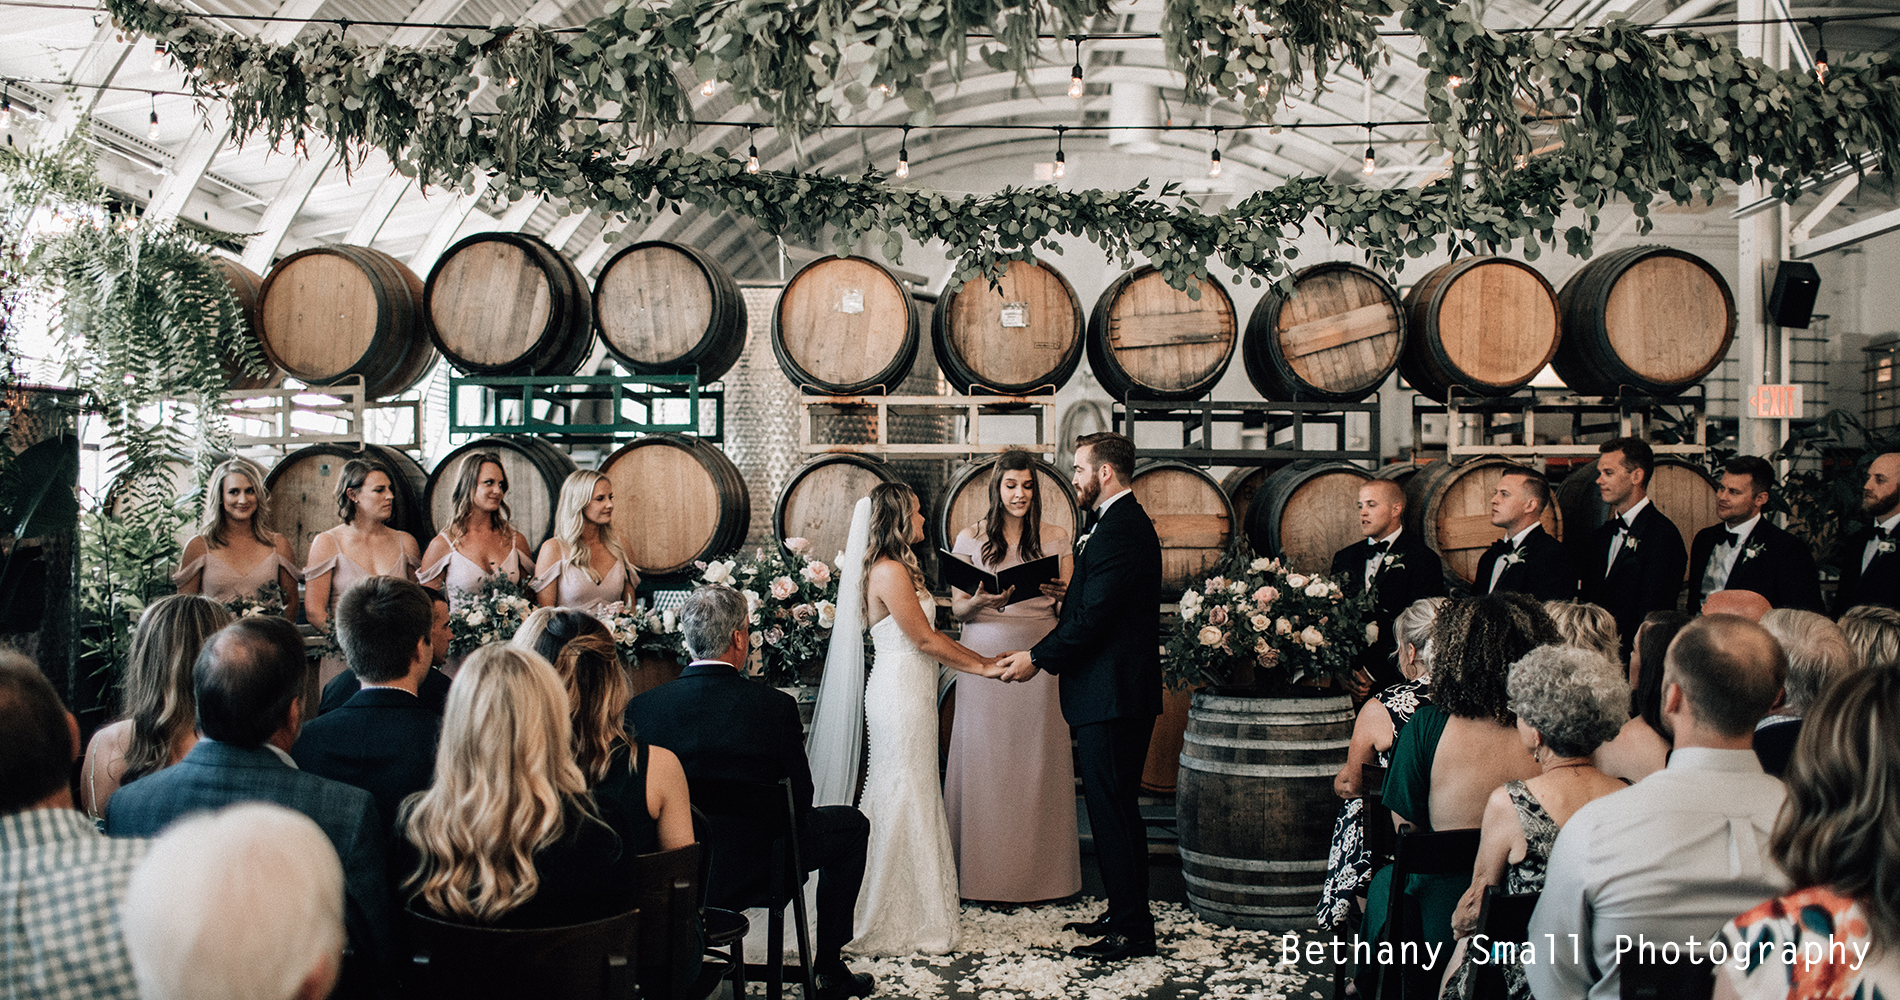 Weddings_Wedding_Events_Design_Wedding_Cake_Corporate_Business_Meeting_Sales_Training_Event_Marketing_Oregon_Portland_Adventure_Winery_Taproom_Event-Space_Dinner_Party_Restaurant_1